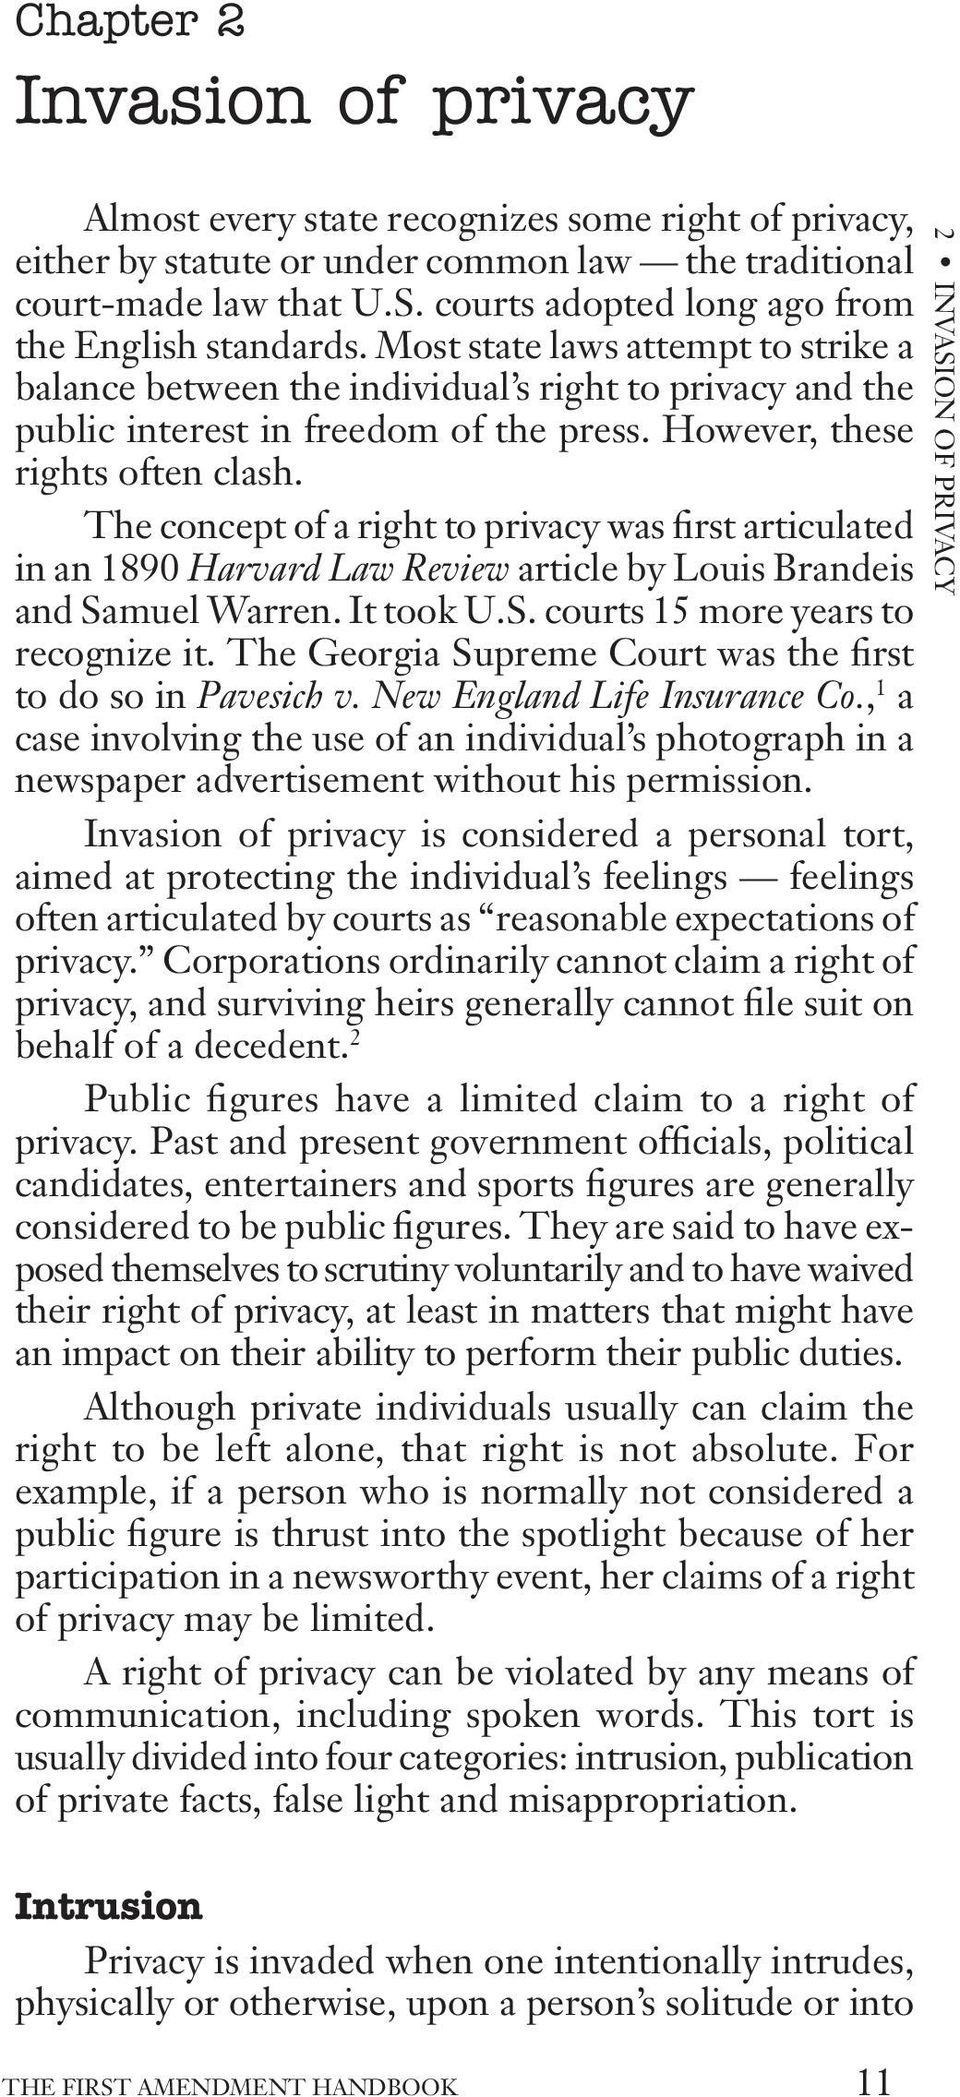 However, these rights often clash. The concept of a right to privacy was first articulated in an 1890 Harvard Law Review article by Louis Brandeis and Samuel Warren. It took U.S. courts 15 more years to recognize it.